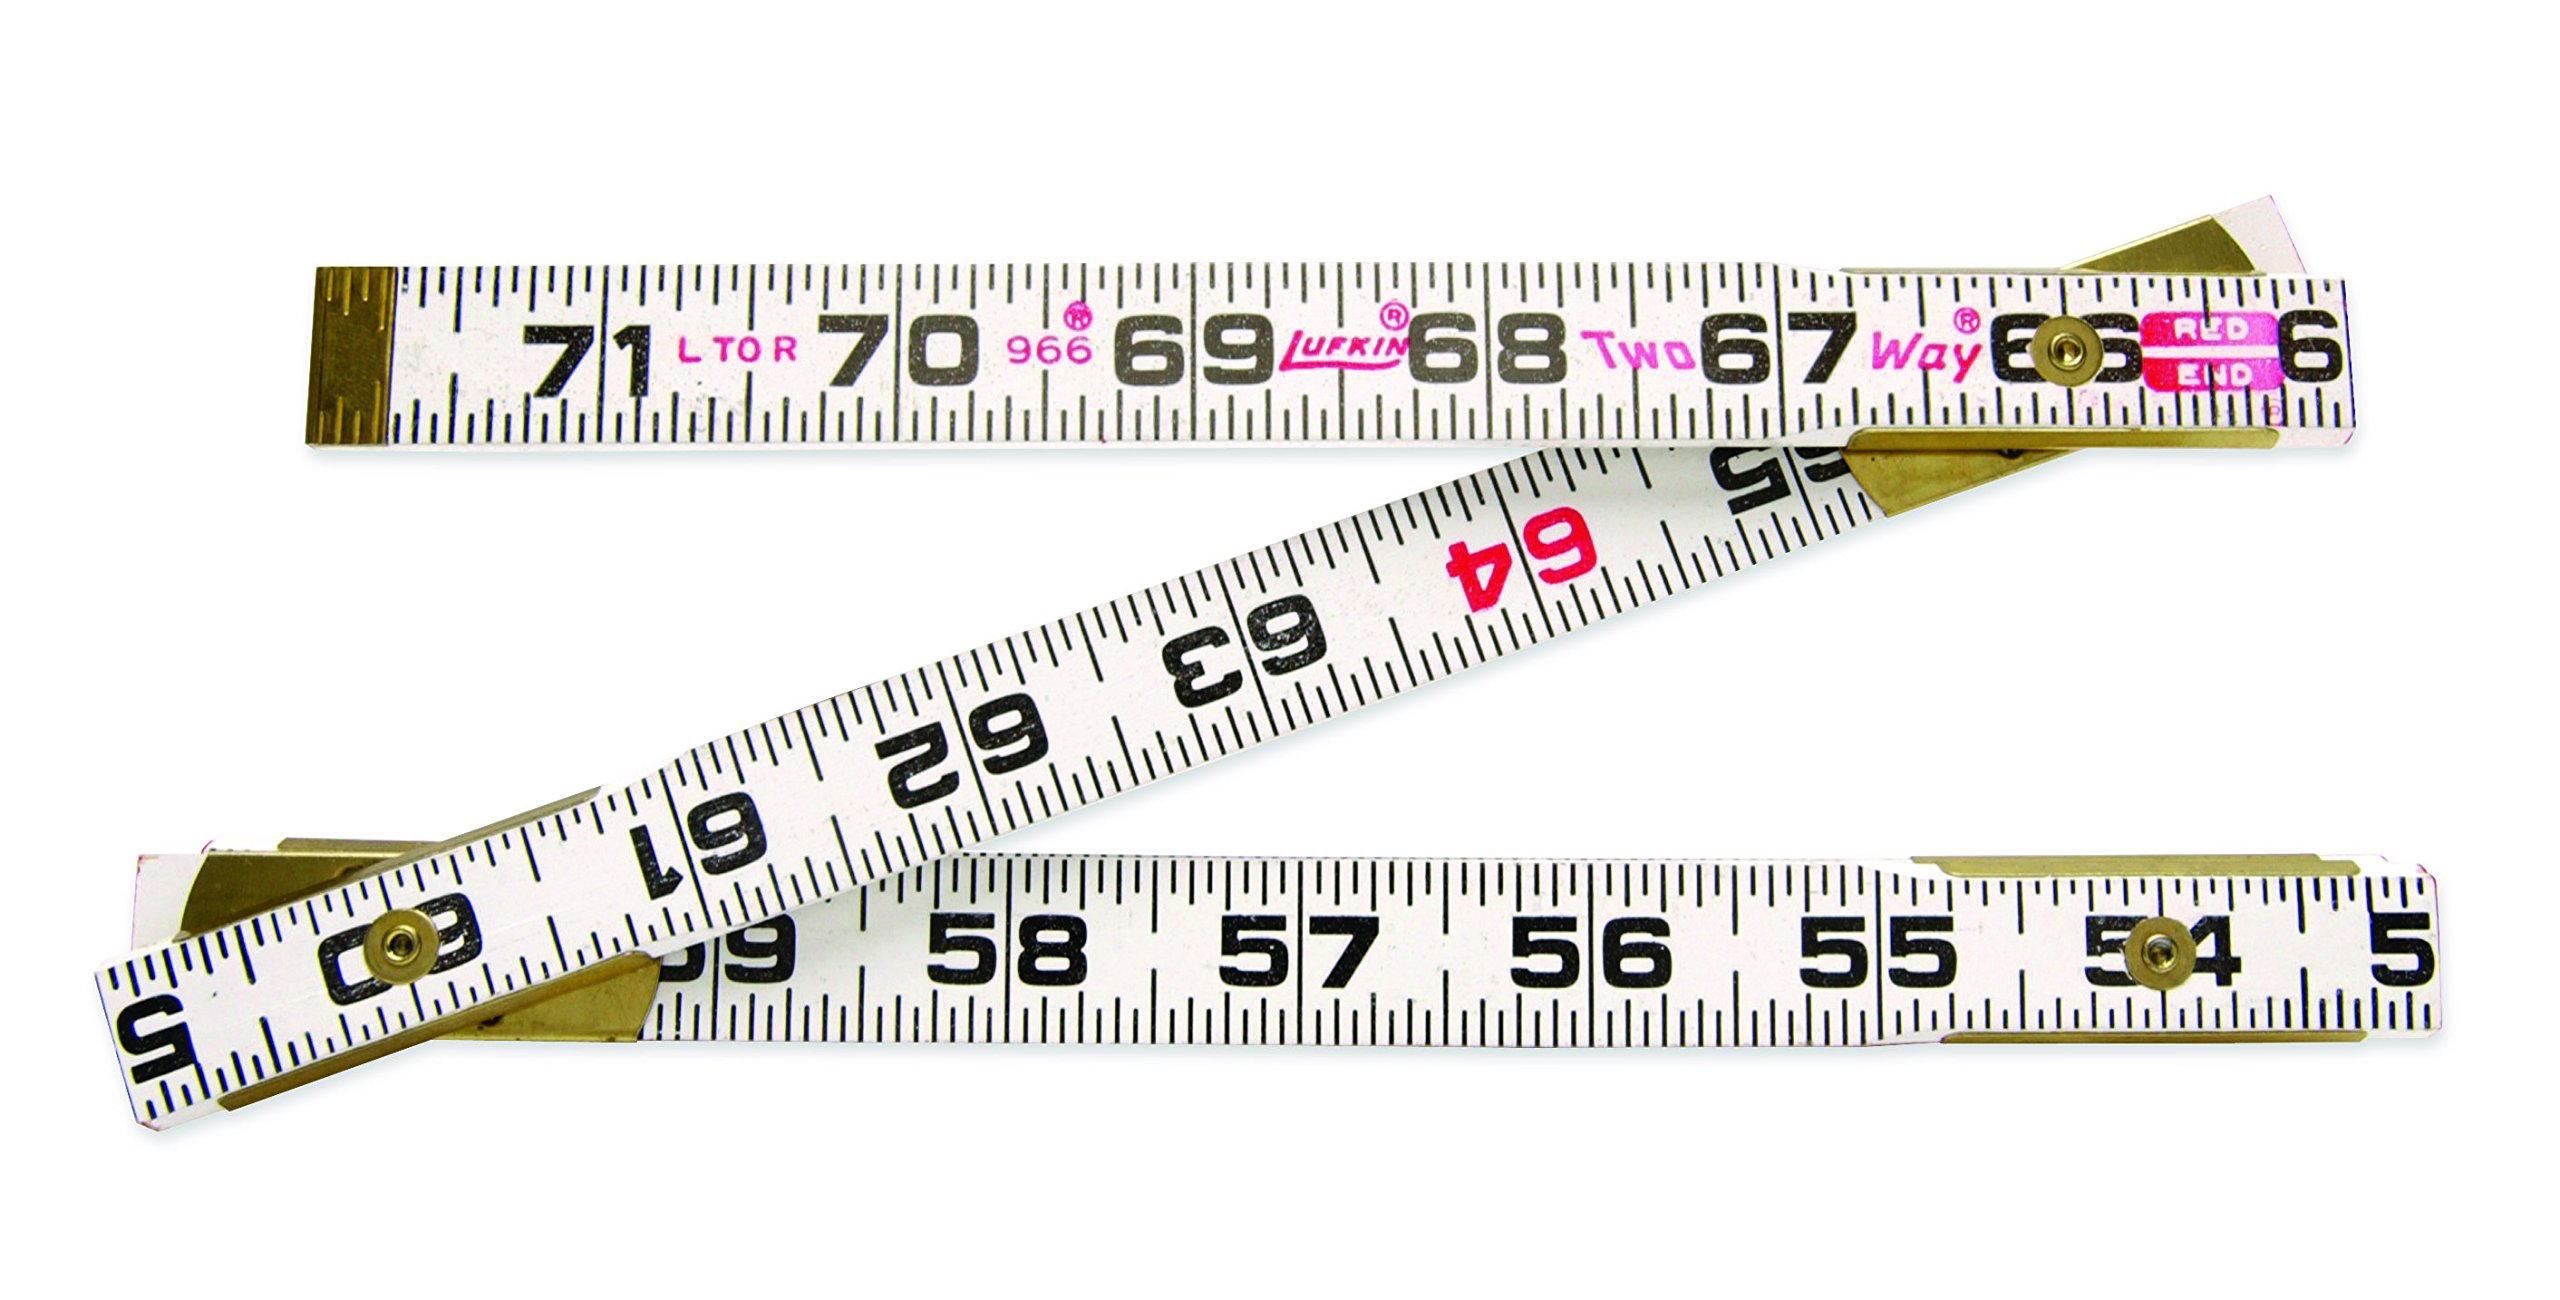 Coopertools 966 6-Inch x 5/8-Inch Wood 2-Way Fold Ruler